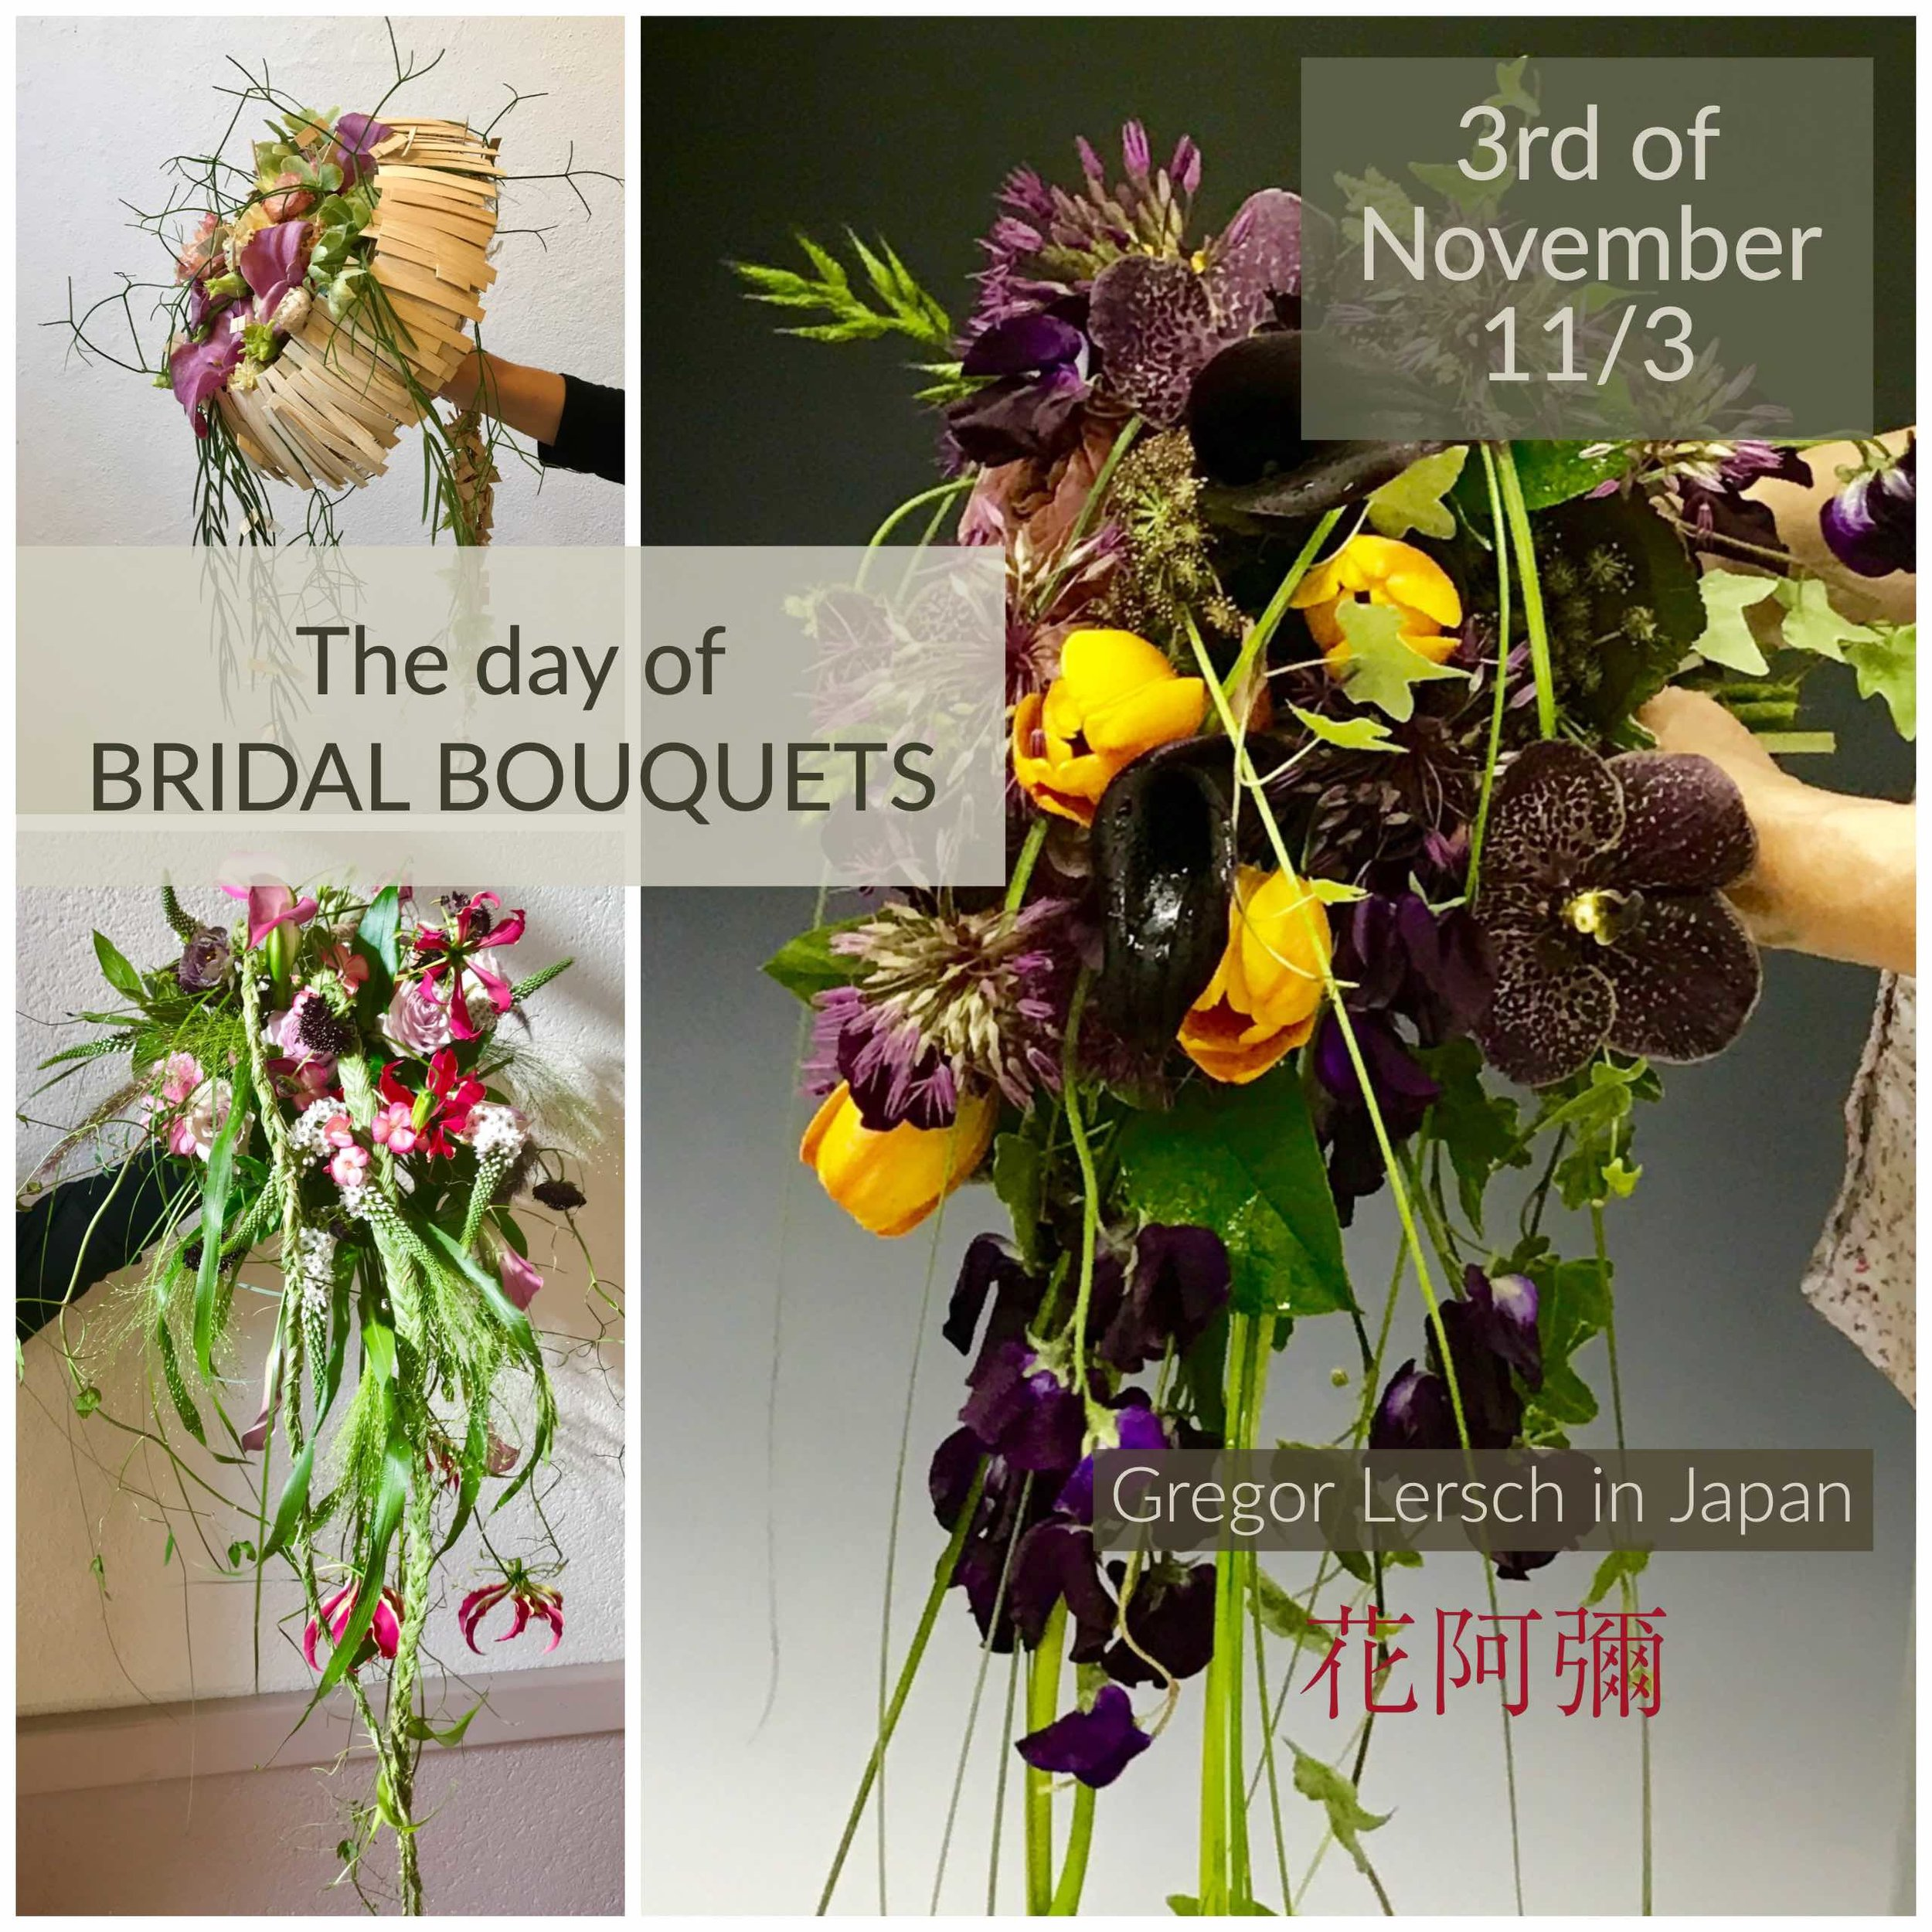 Day 2 Bridal Bouquets 11/3